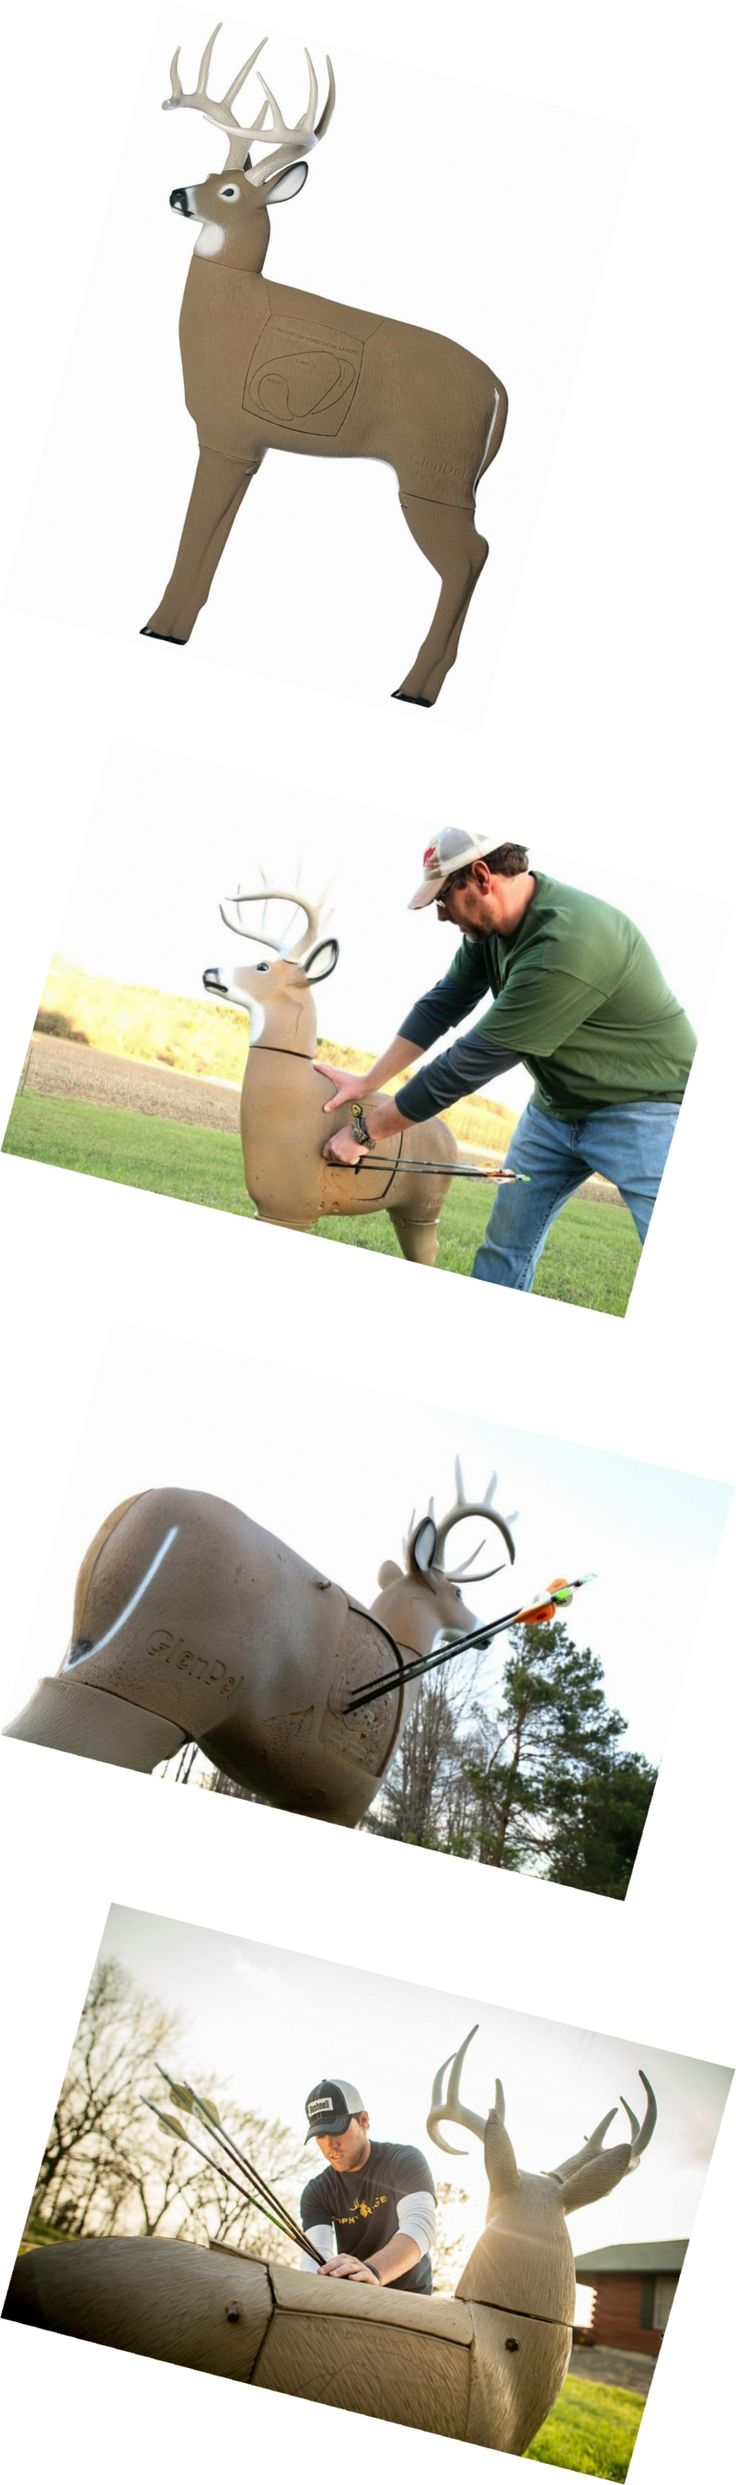 Targets 52480: Glendel Buck 3D Archery Target With Replaceable Insert Core -> BUY IT NOW ONLY: $191.66 on eBay!